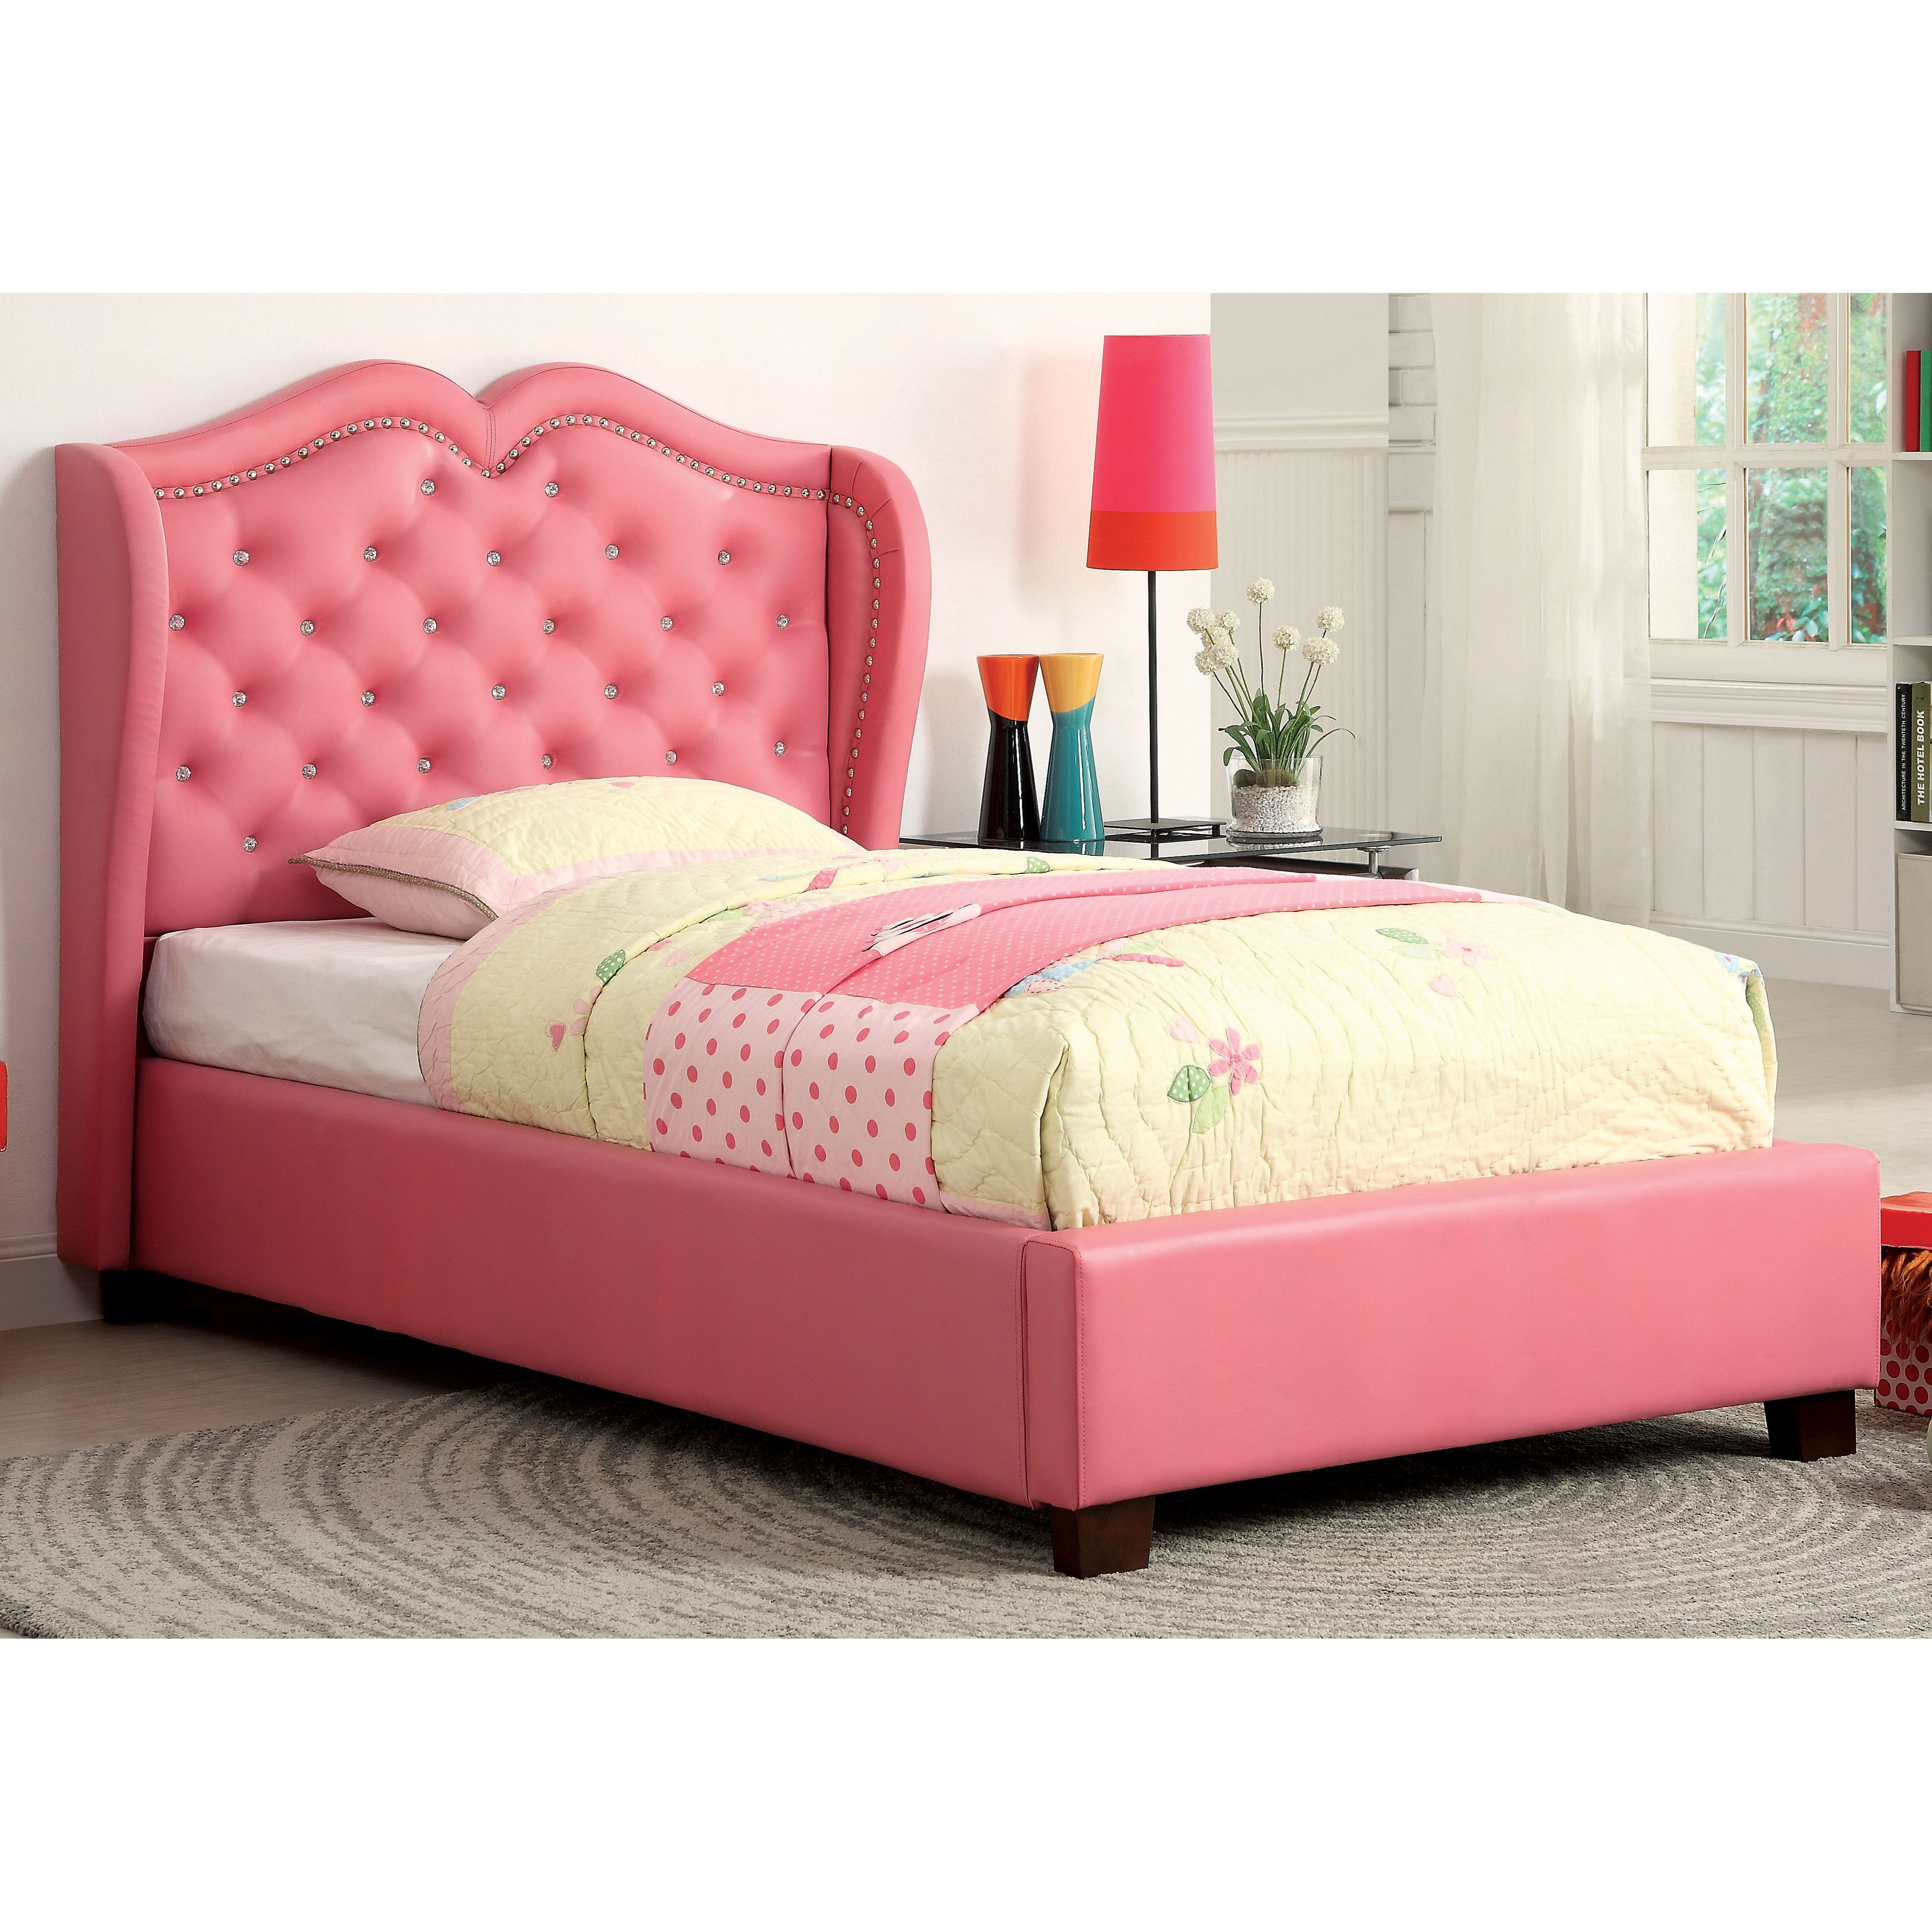 Home Girls Bedroom Furniture Girls Twin Bed Twin Princess Bed